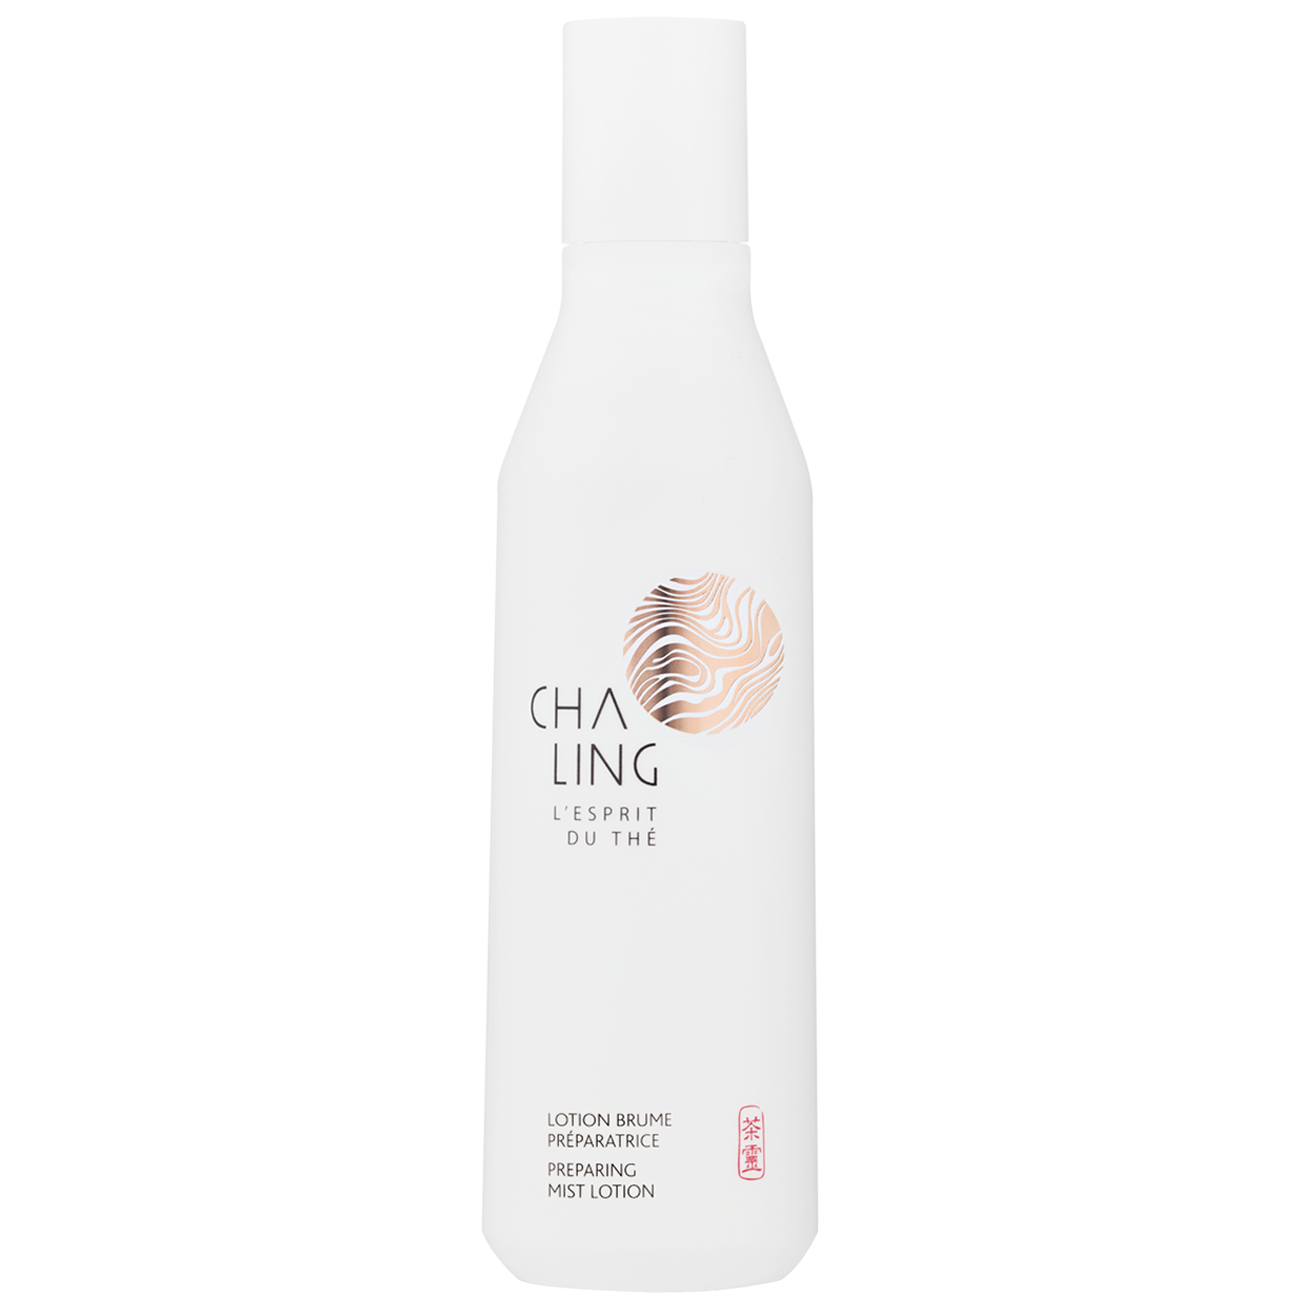 cha ling luxe durable cosmetiques